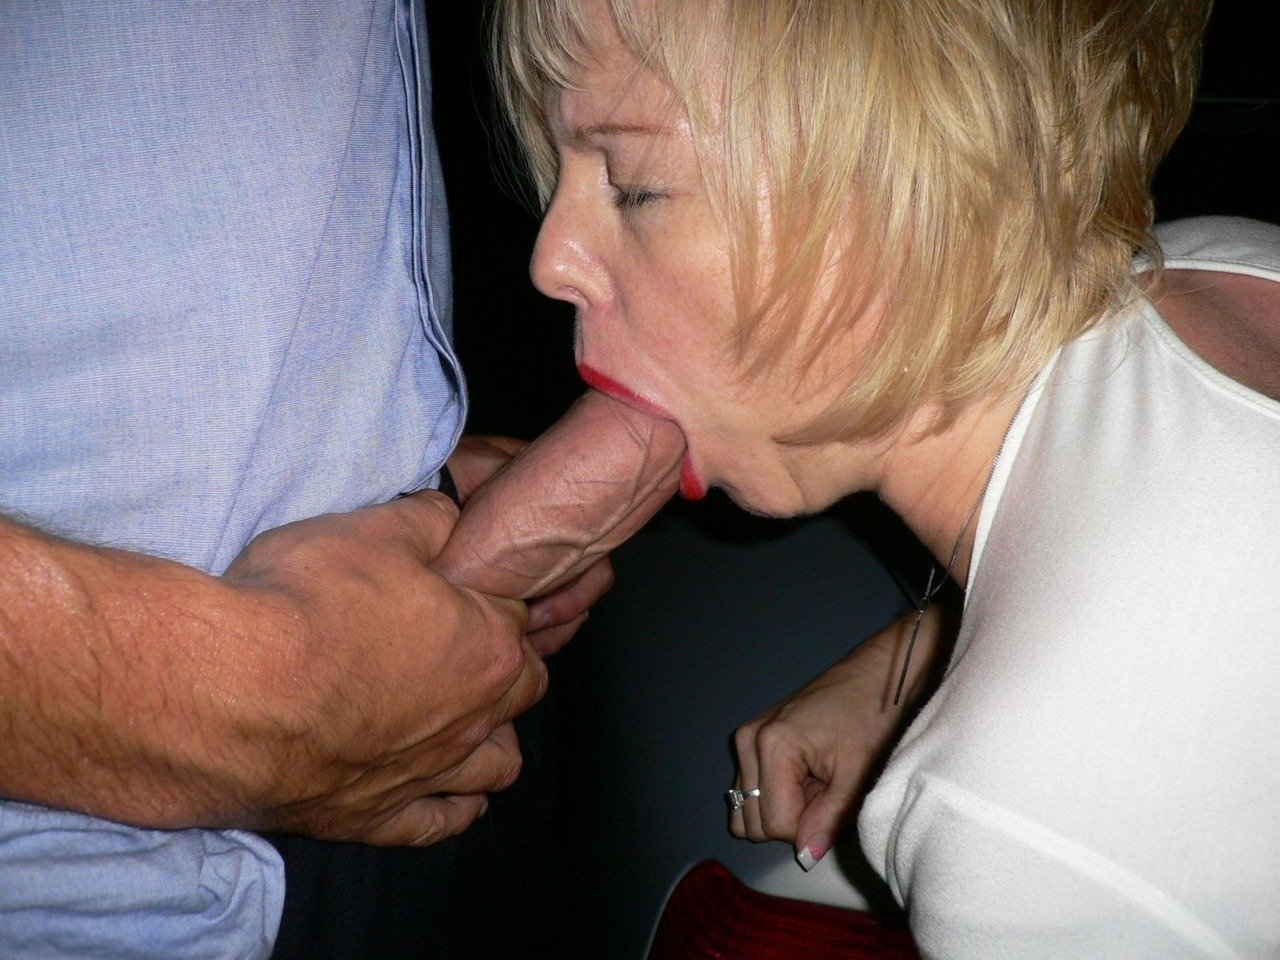 Free mature, blowjob pictures